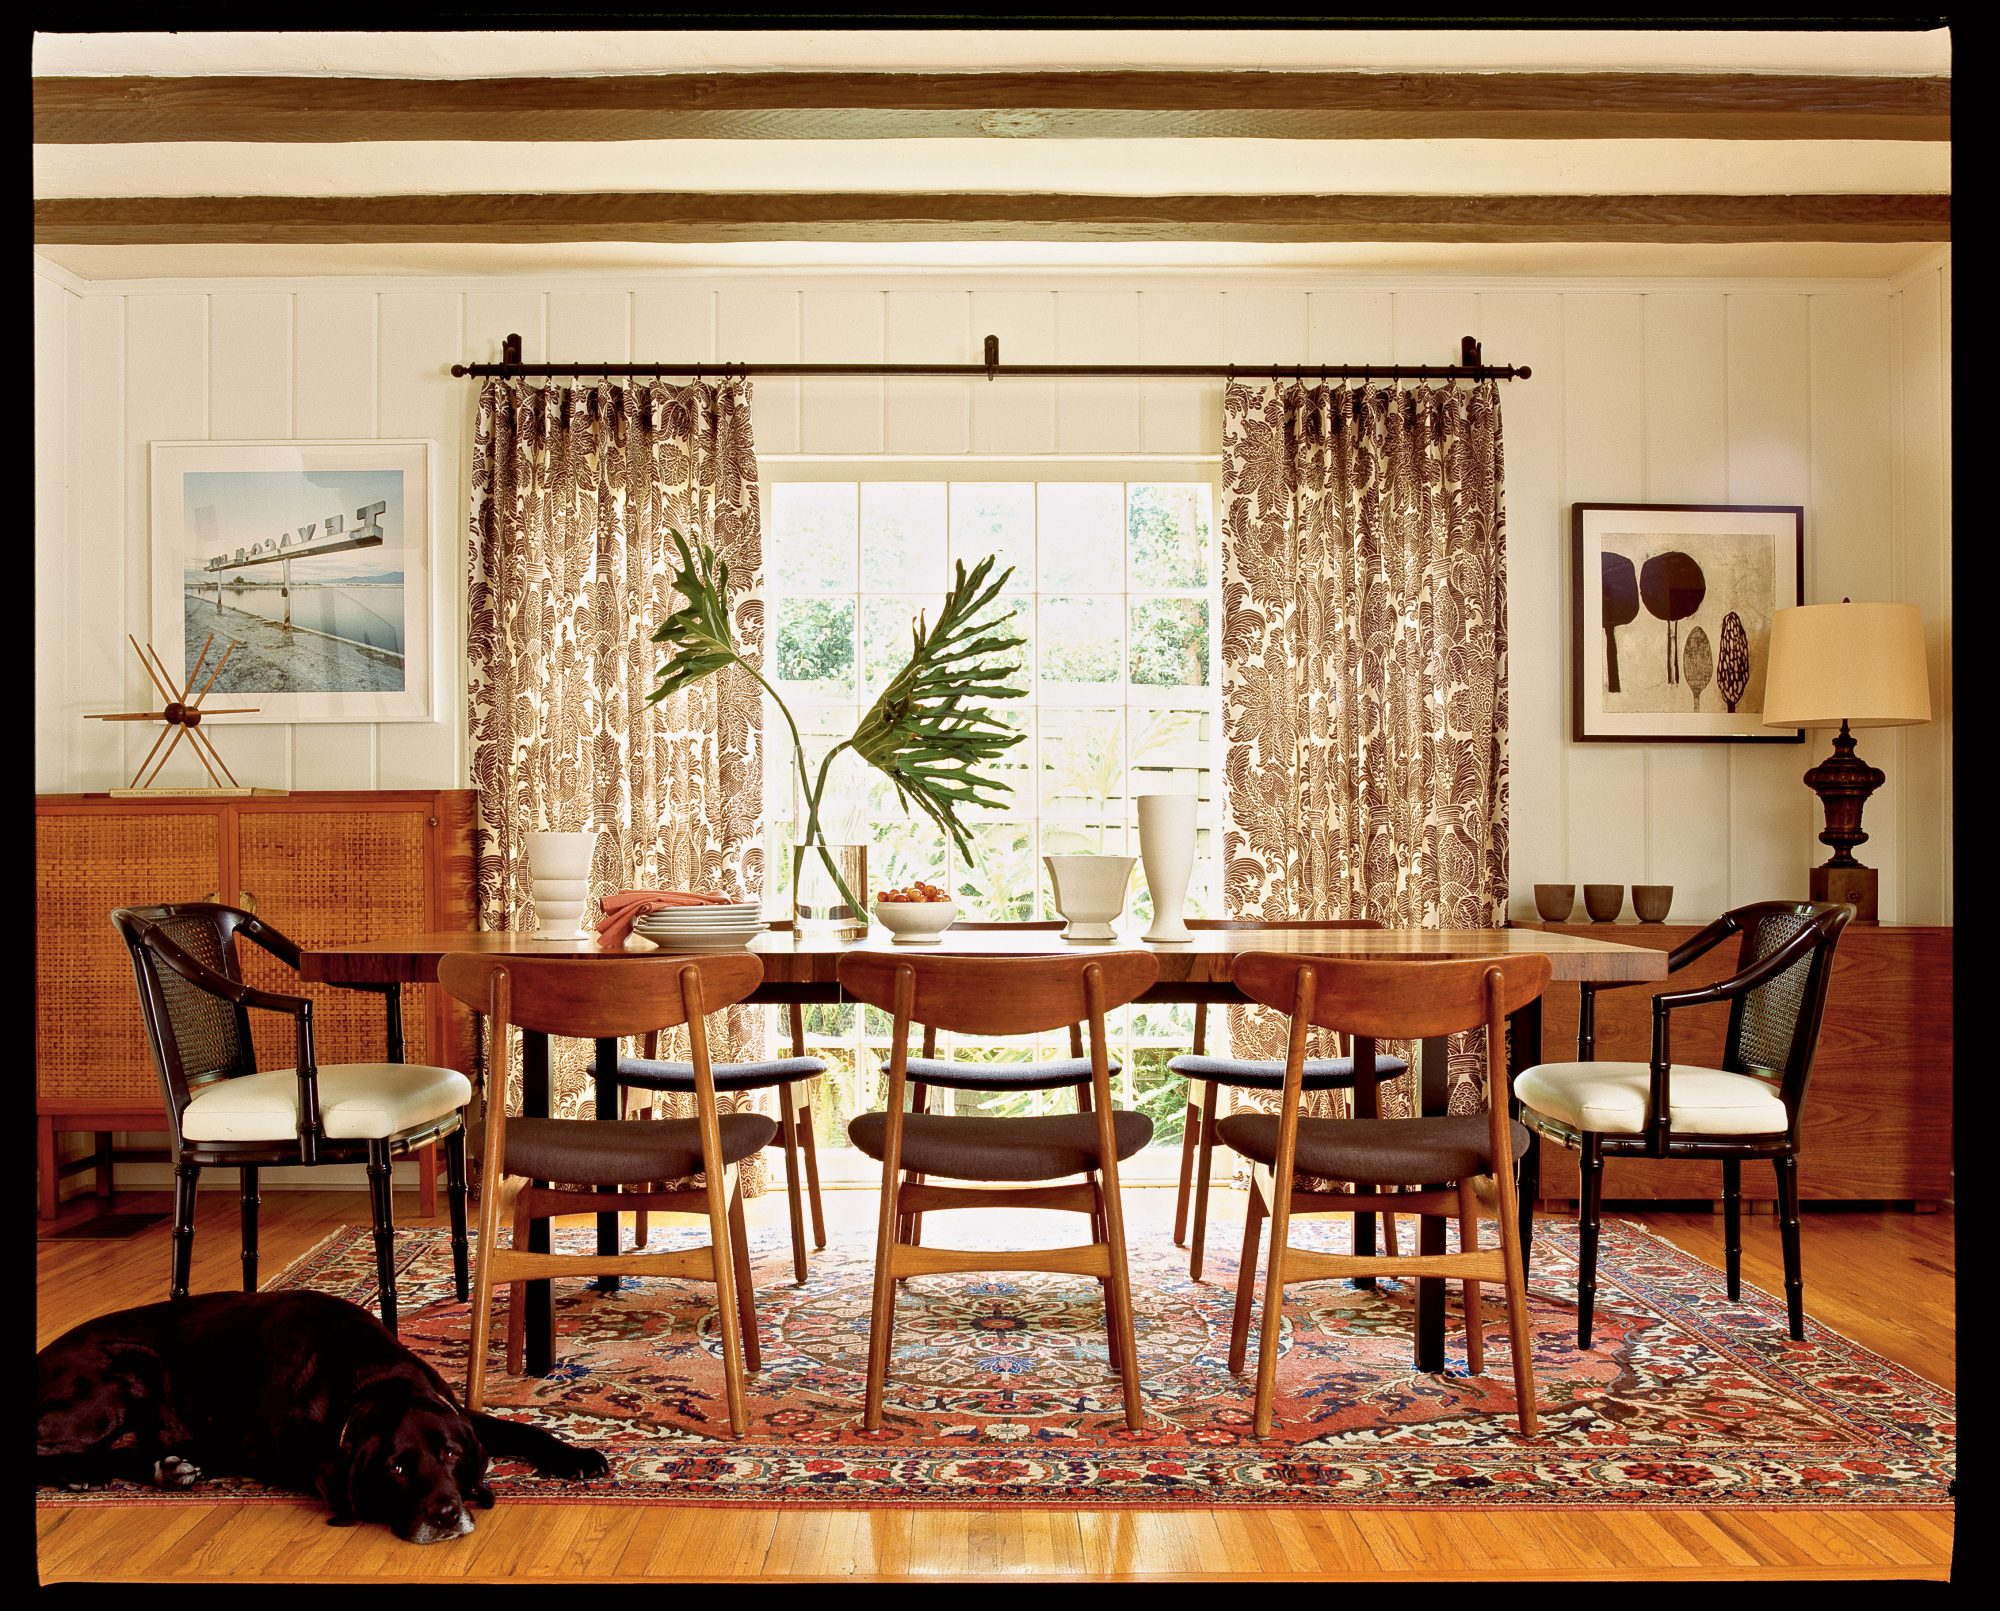 The quirky combinations in this chic dining room, like a Persian rug paired with chocolate and cream paisley curtains, only work because they're allowed to stand out. Meek prints need not apply!